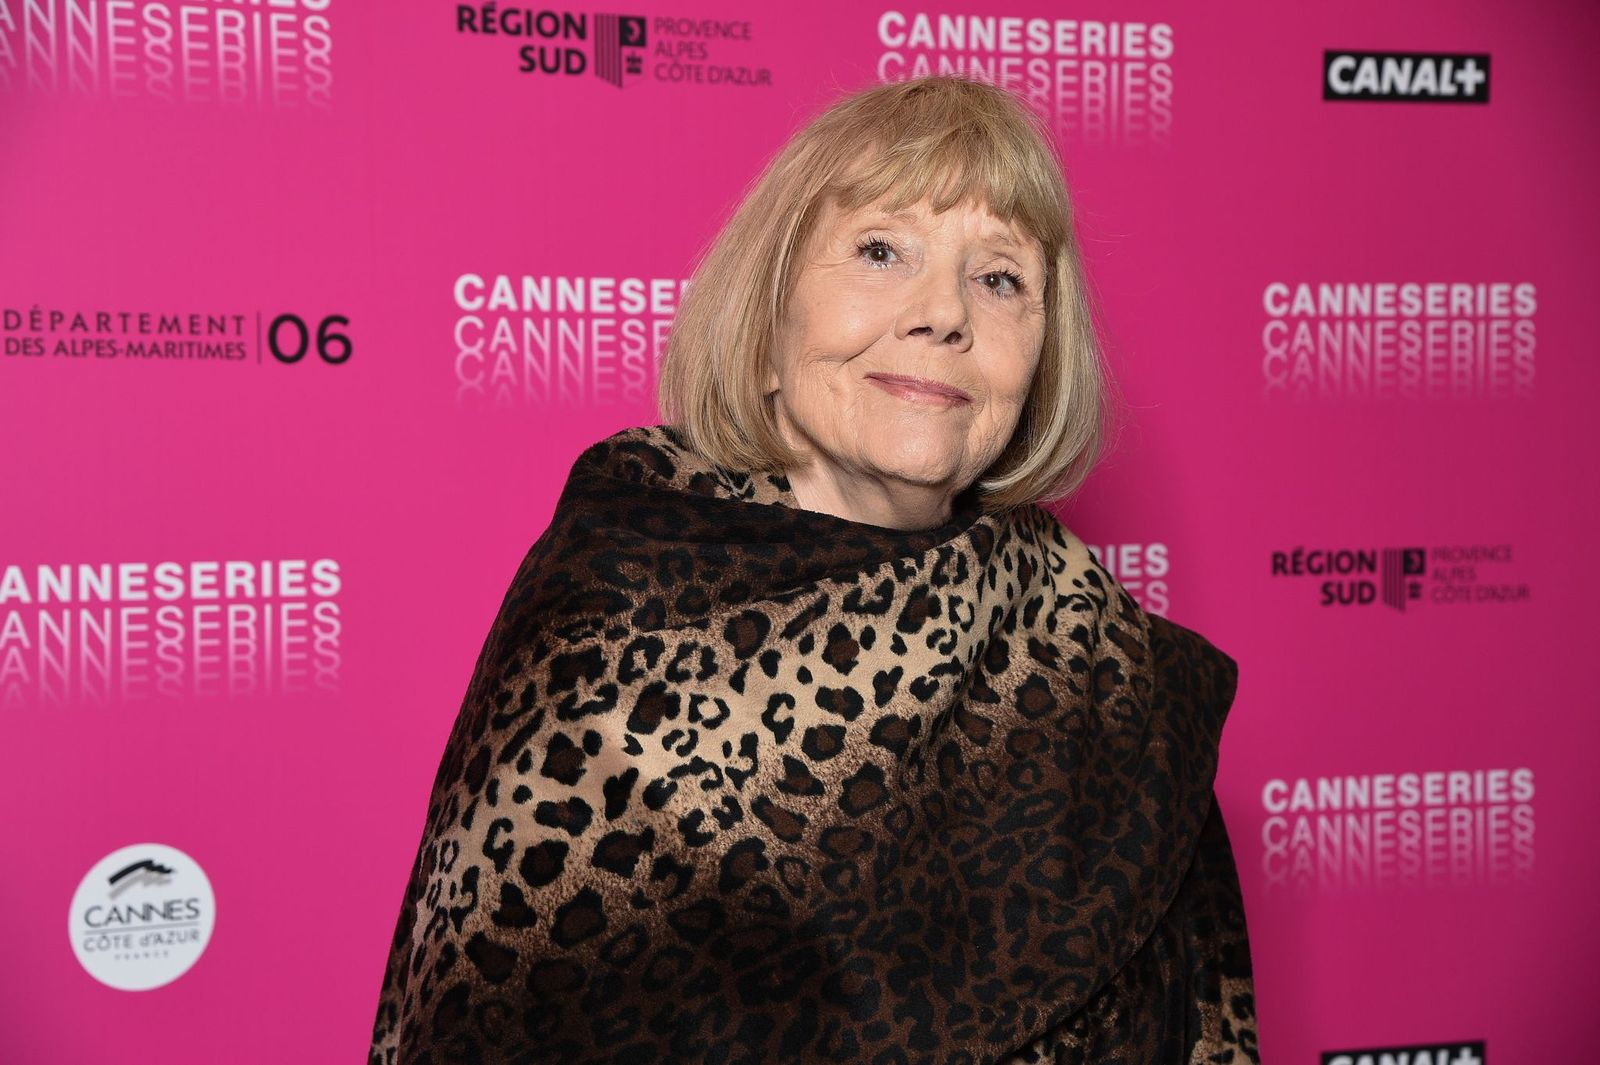 Diana Rigg le 06 avril 2019 à Cannes, France. | Photo : Getty Images